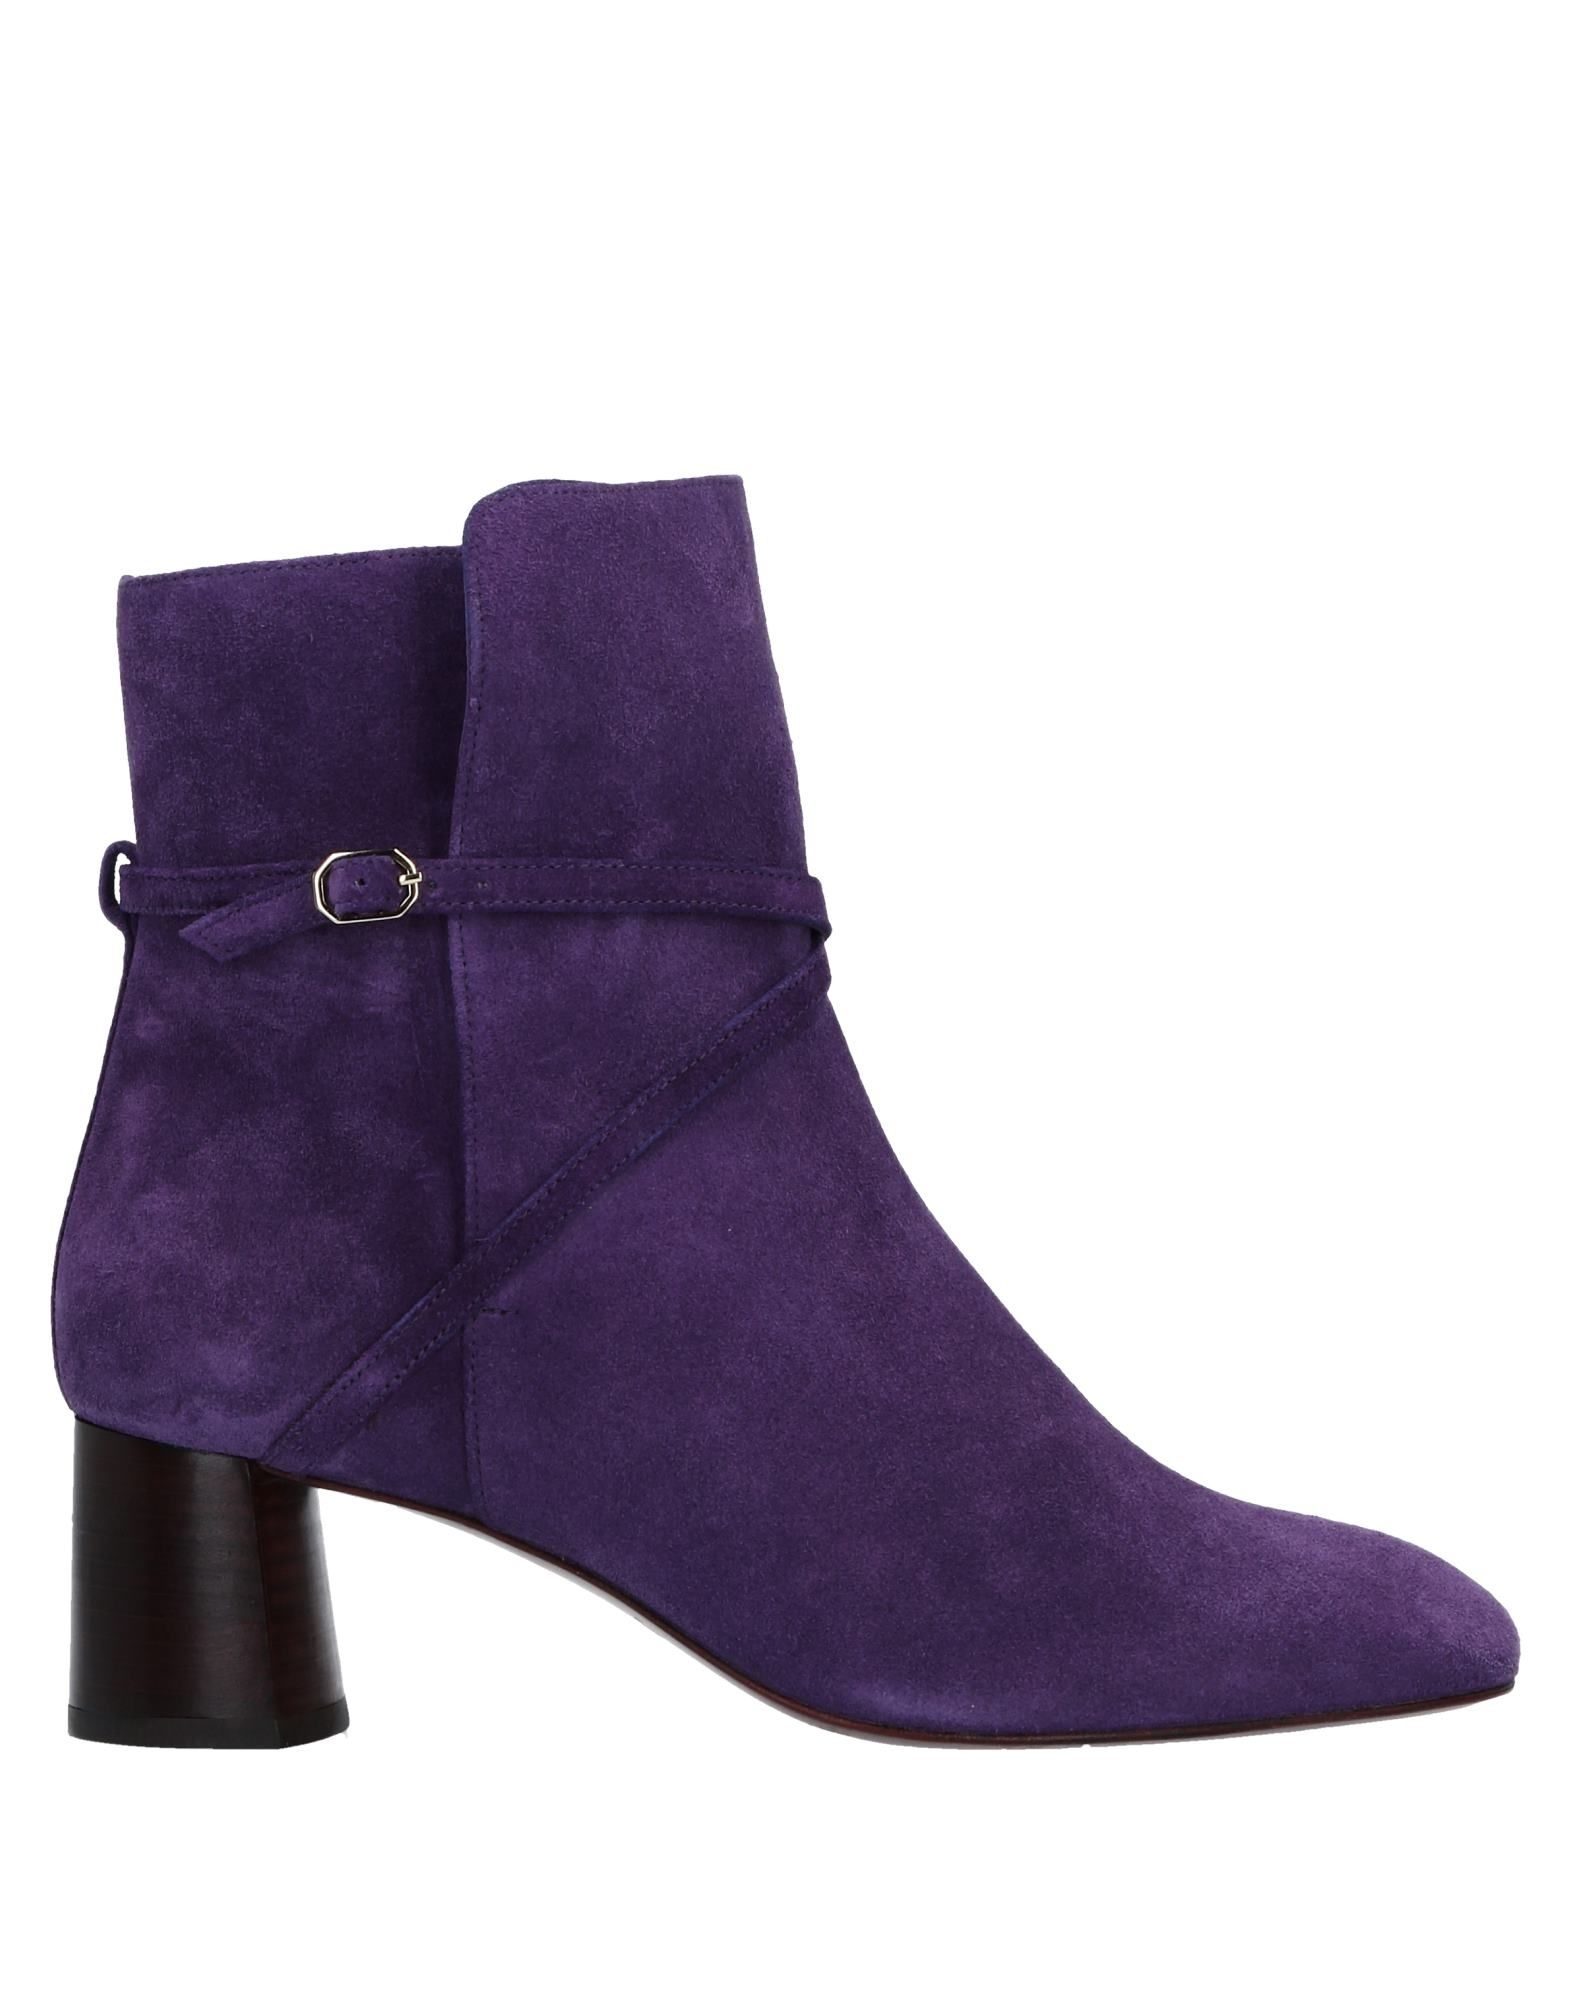 AVRIL GAU Ankle Boots in Mauve